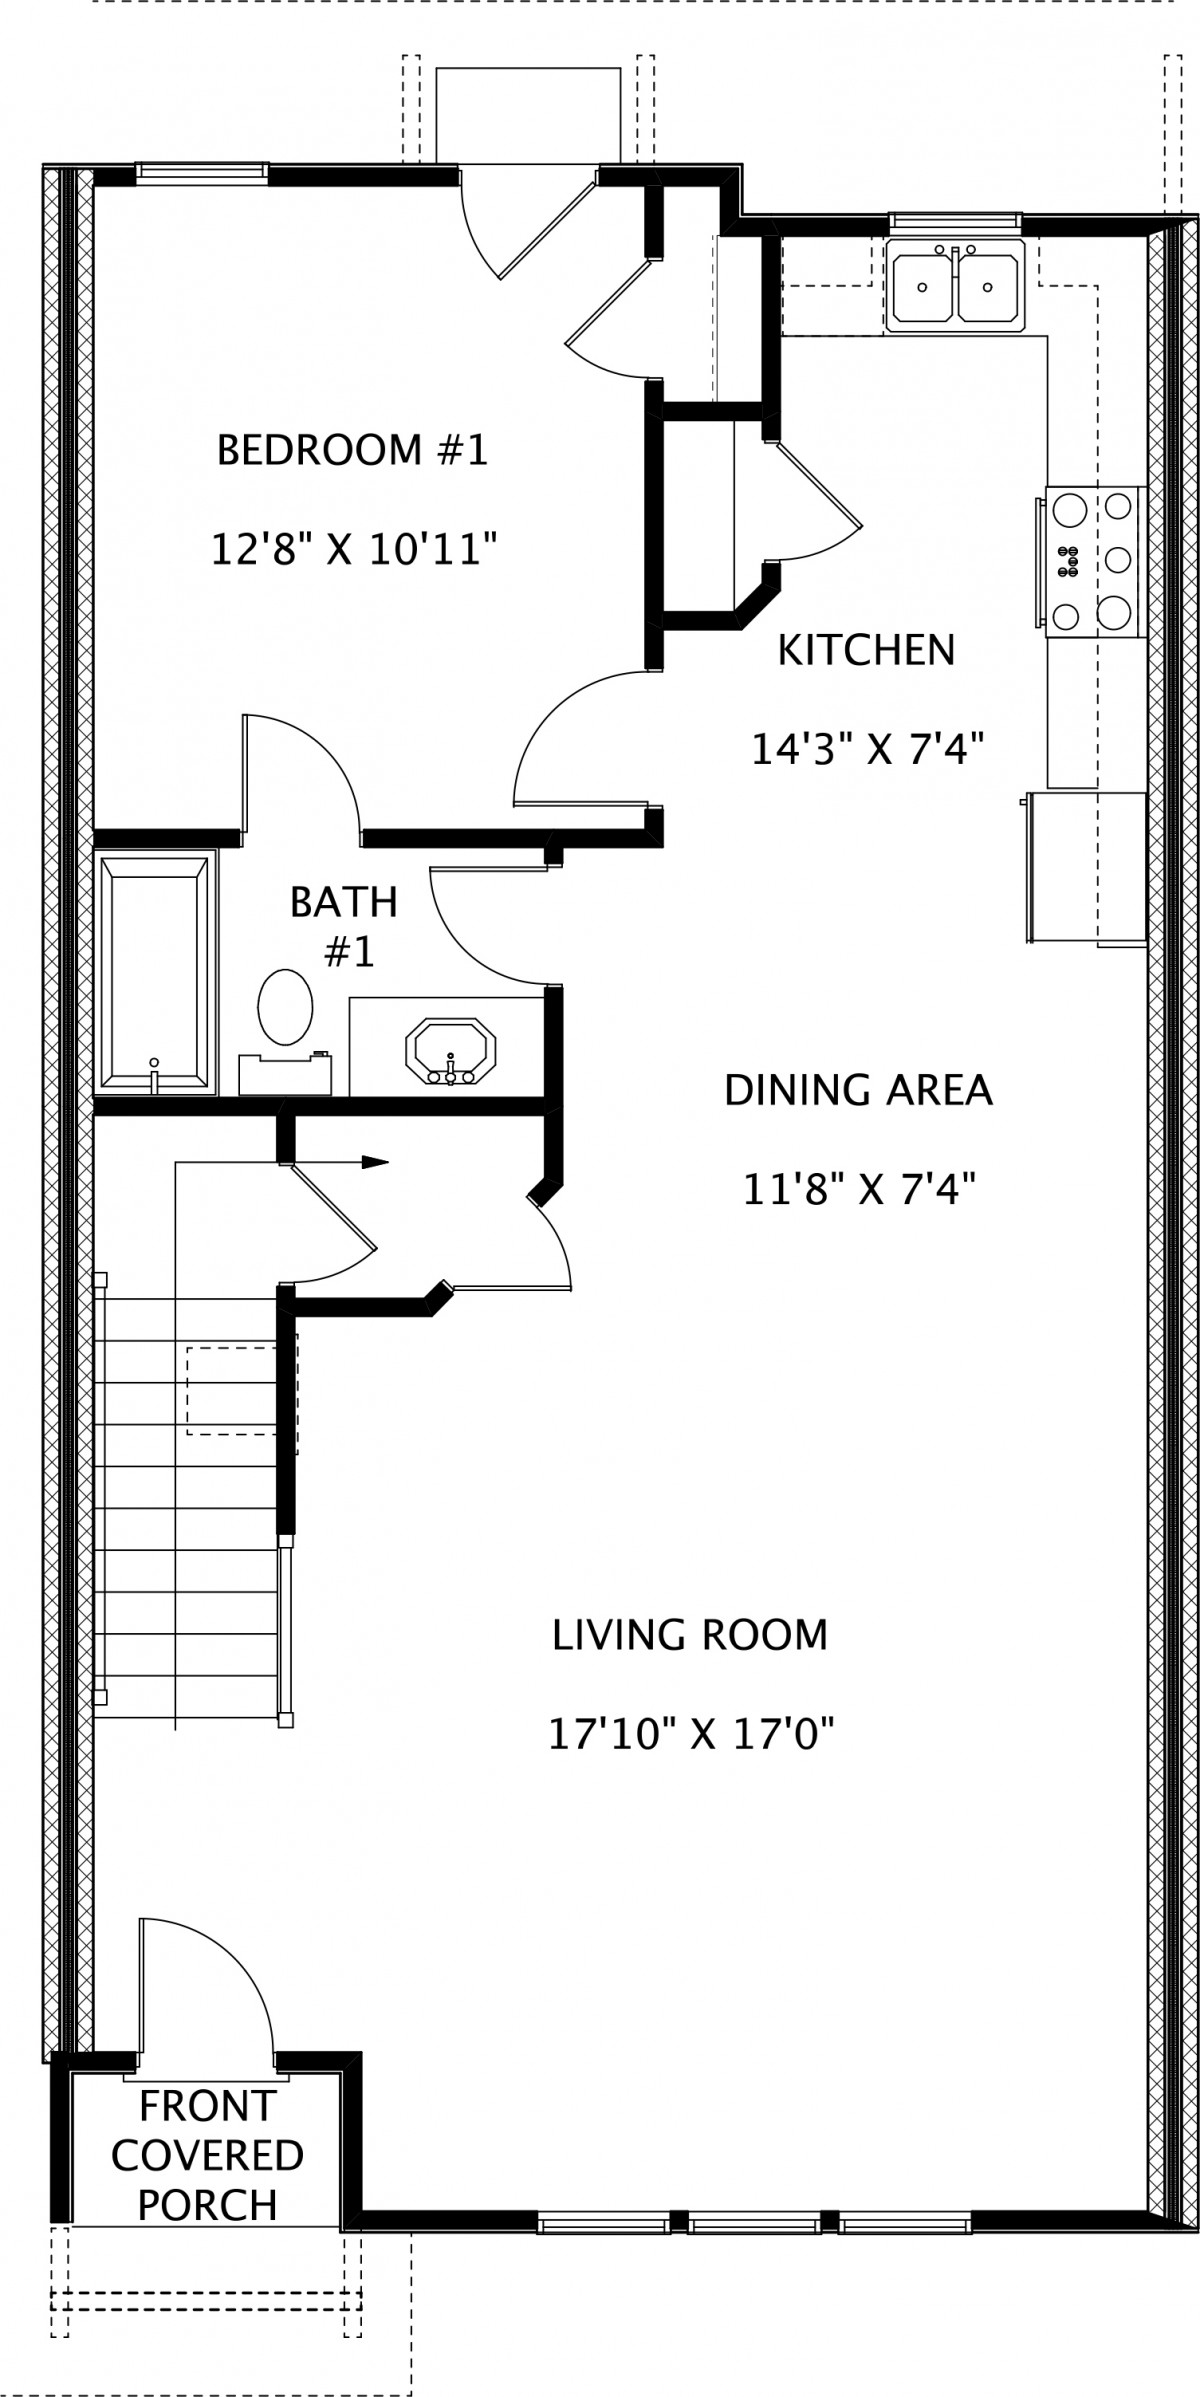 Twin Forks Townhomes Interior Unit